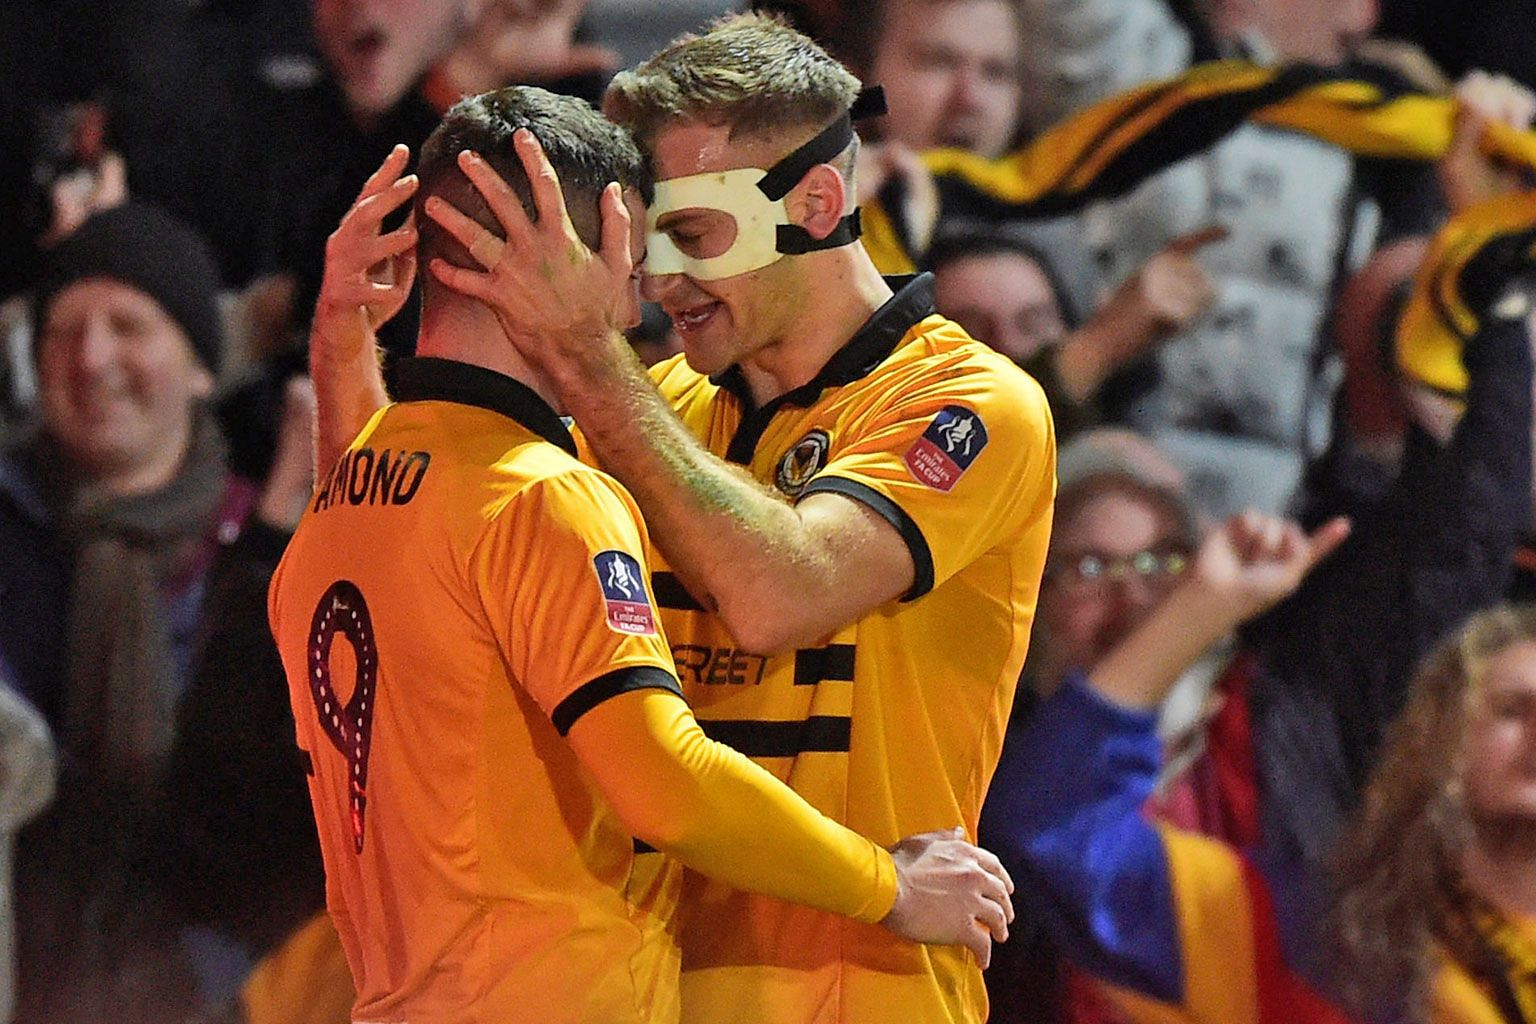 Above: Newport County's unlikely 2-1 triumph over the 2016 Premier League champions Leicester City in the third round of the FA Cup on Sunday exemplified the romance of the competition, leaving fans like this man struggling to contain his delight and